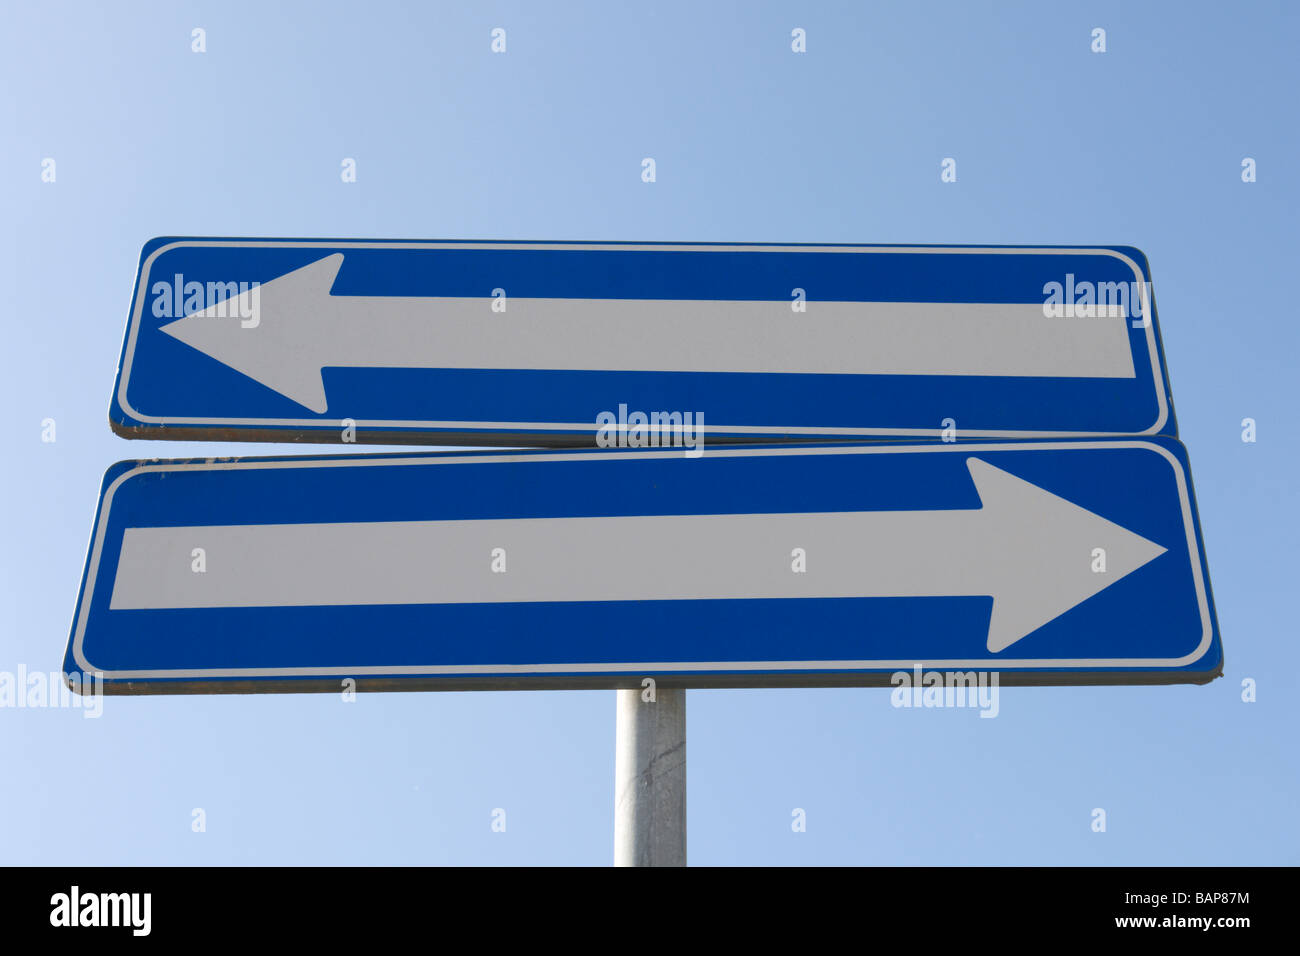 Road sign with two one way signs indicating opposite directions - Stock Image